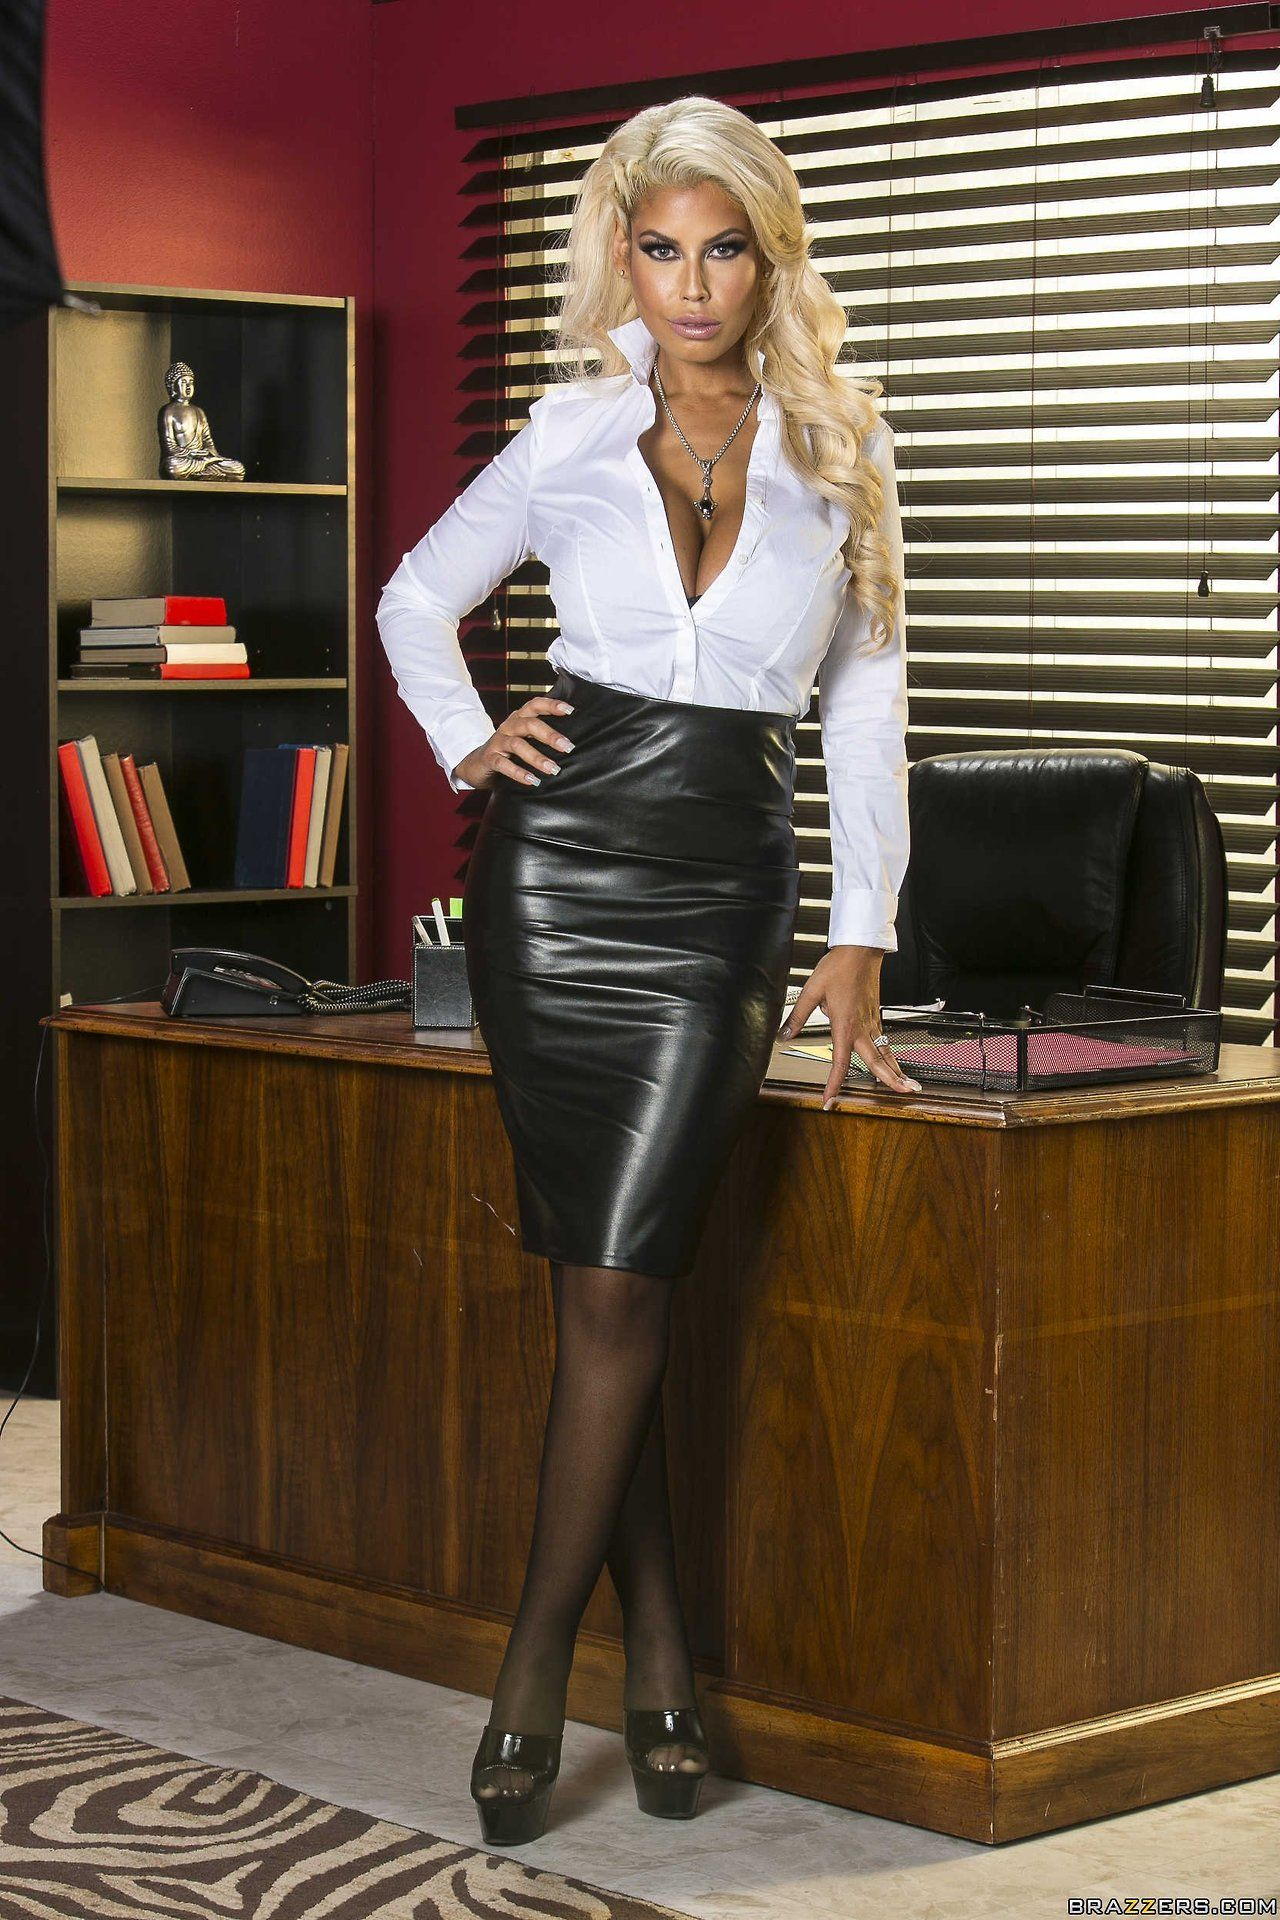 Big Boobs In Tight Blouses  Mightbull In 2018  Pinterest  Leather, Leather Skirt -2305